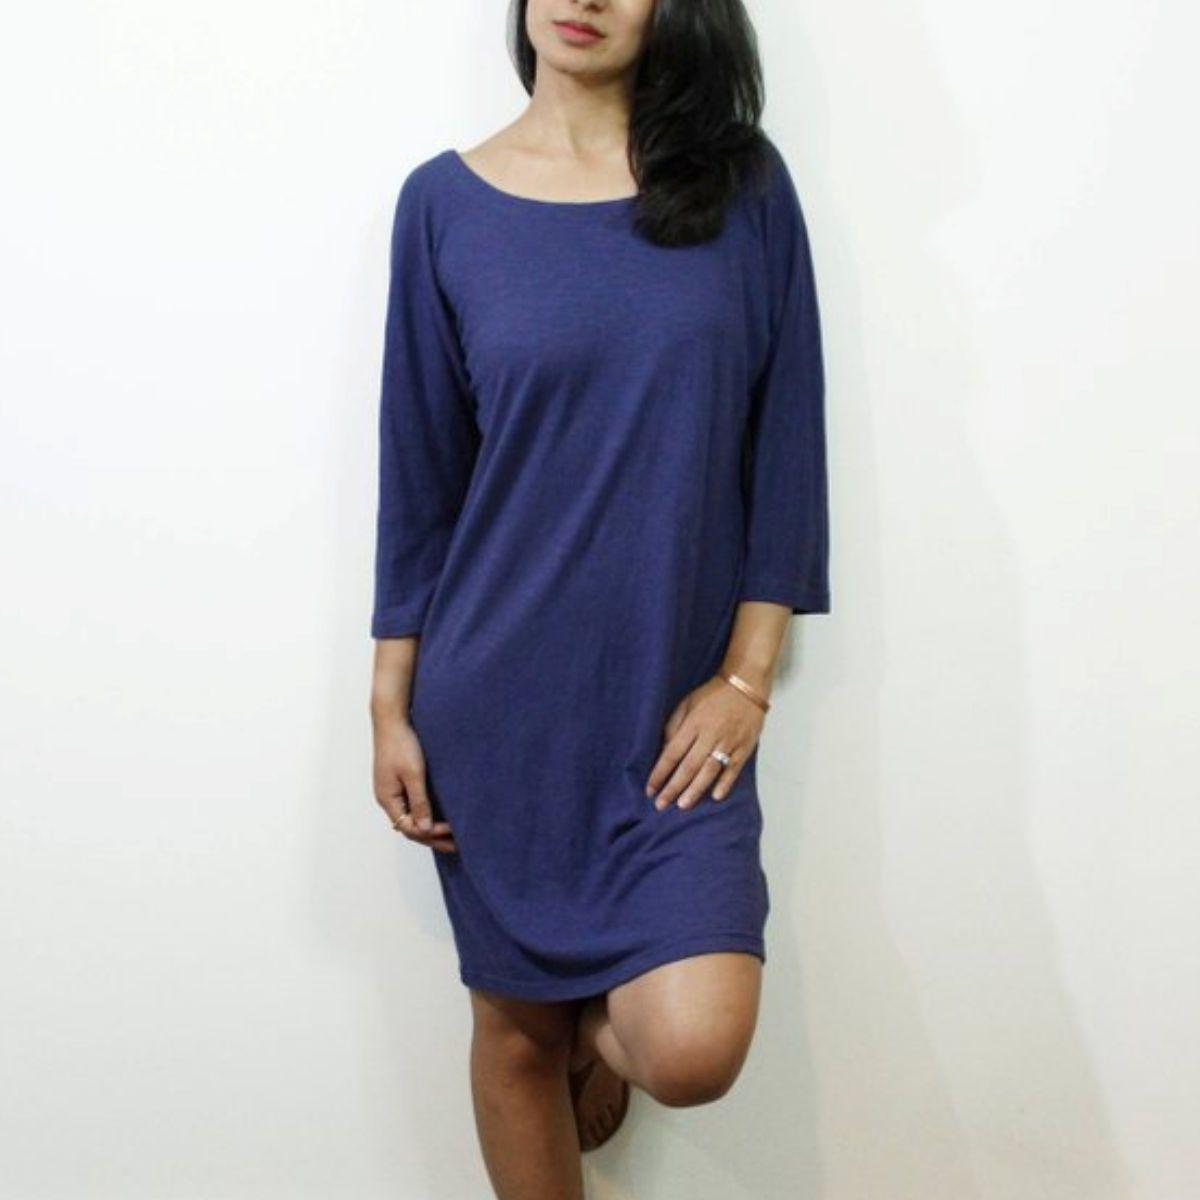 Women's Hemp V Cut Dress